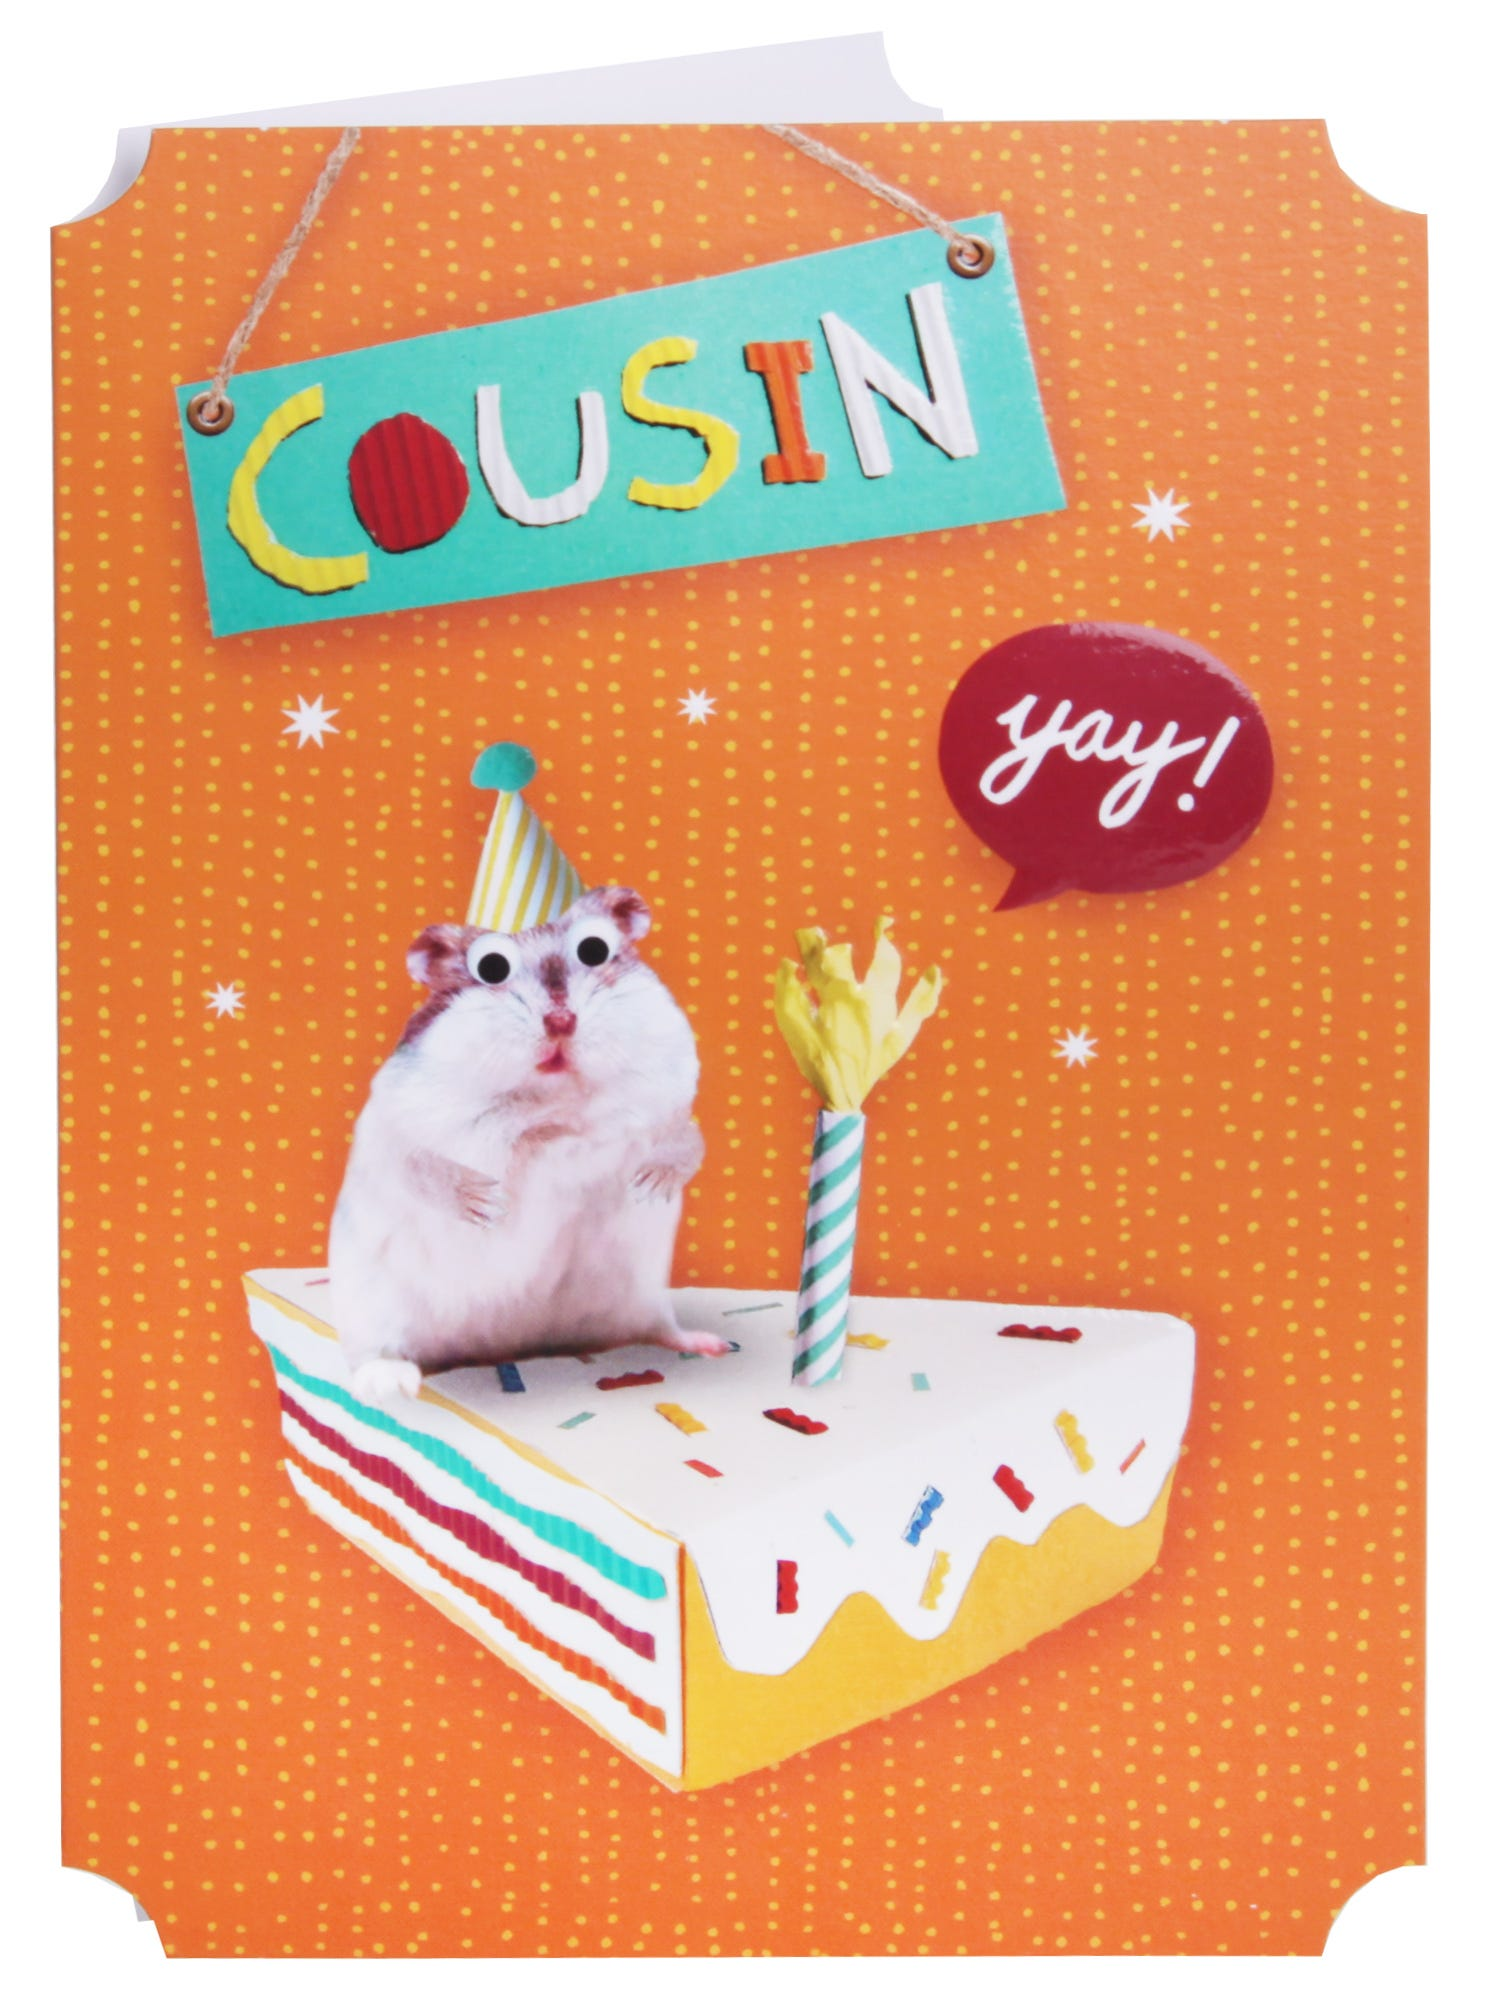 Clintons Collection Cousin Birthday Card